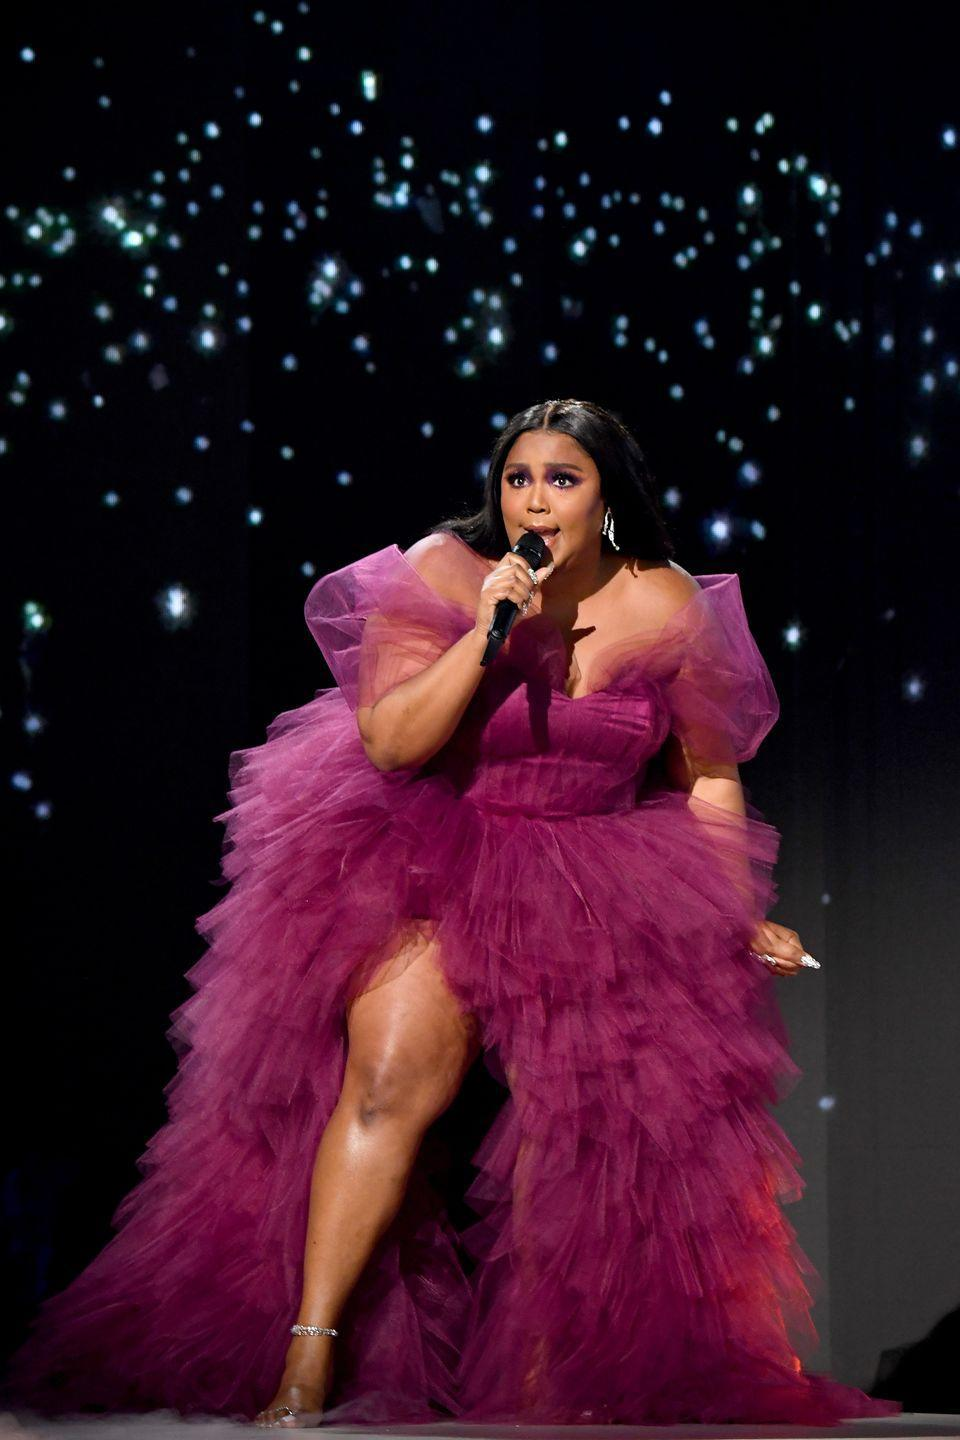 <p>Looking like a goddess at her AMA performance in a gown by Dauxilly. </p>